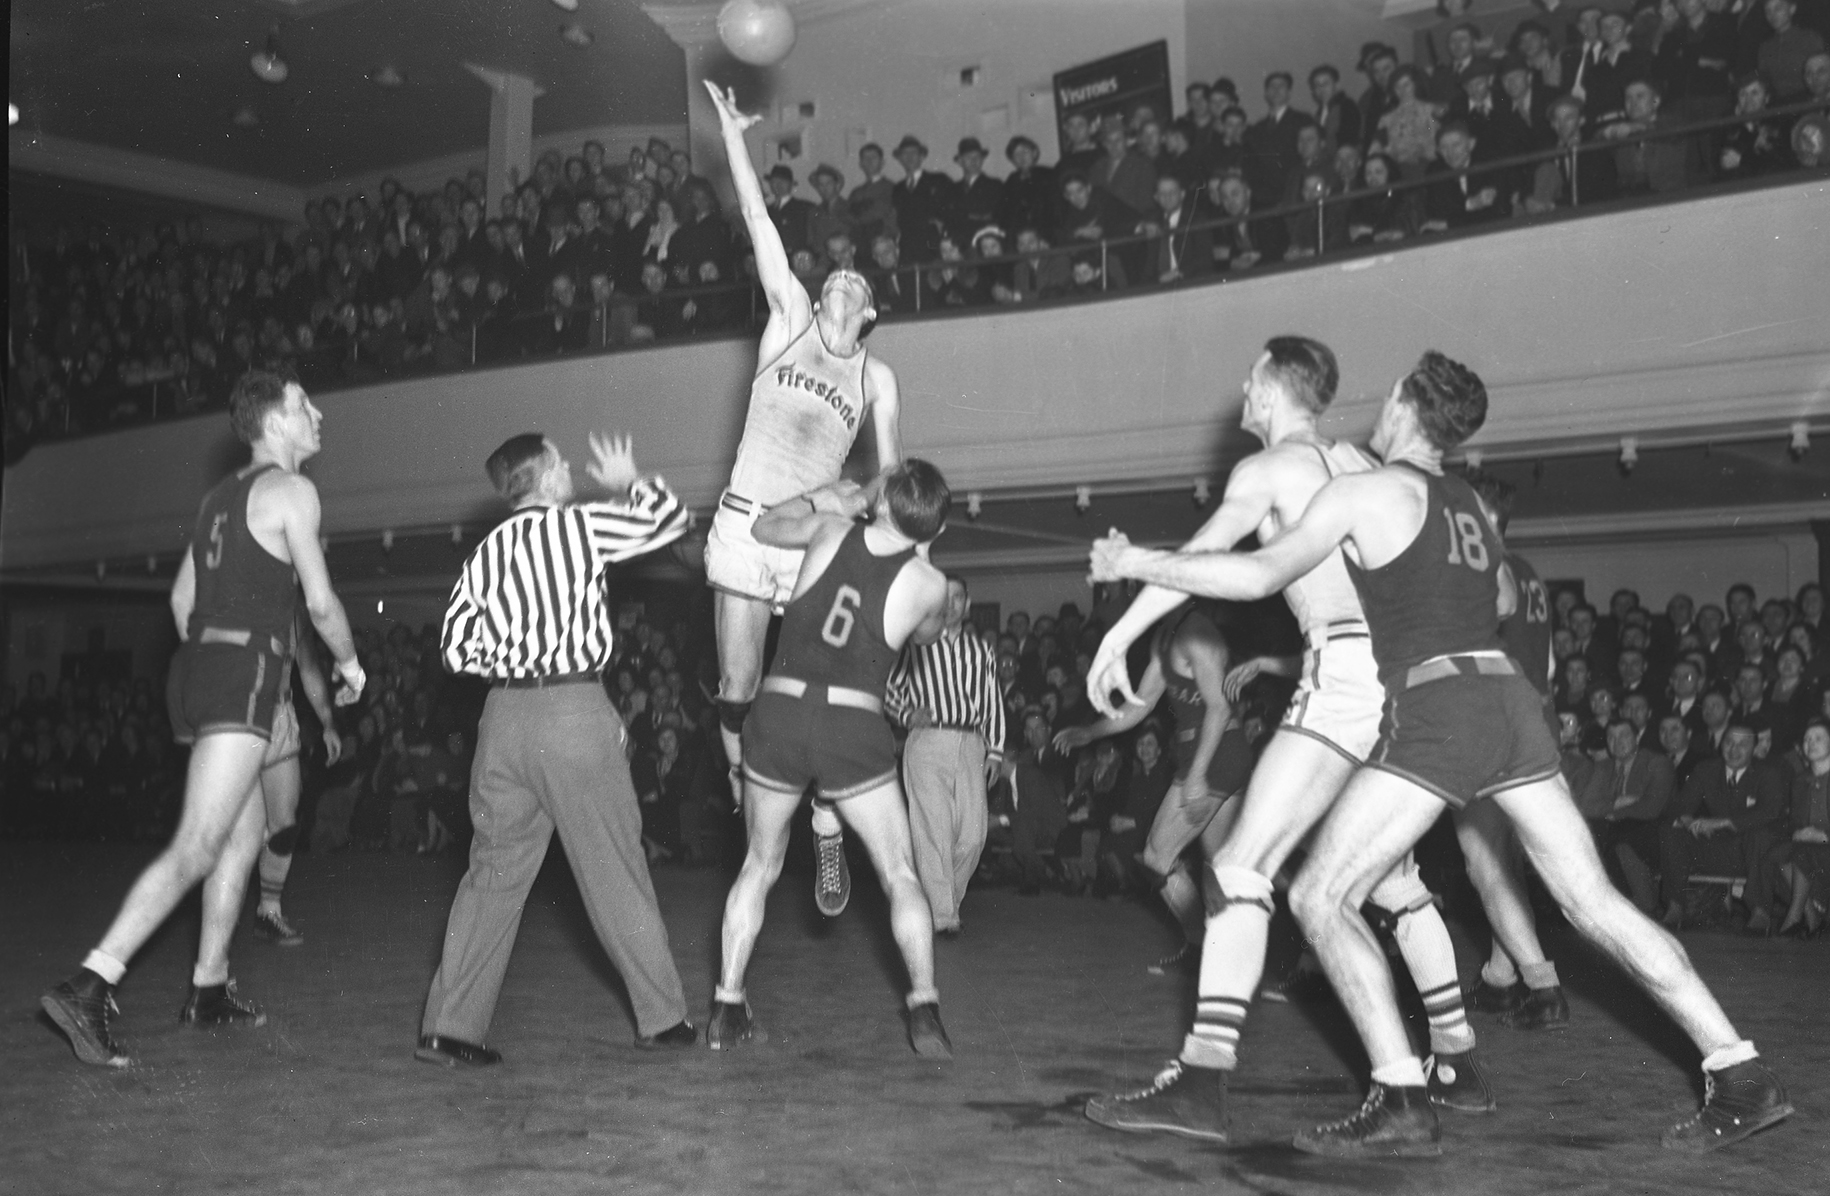 Industrial leagues put Akron on basketball map